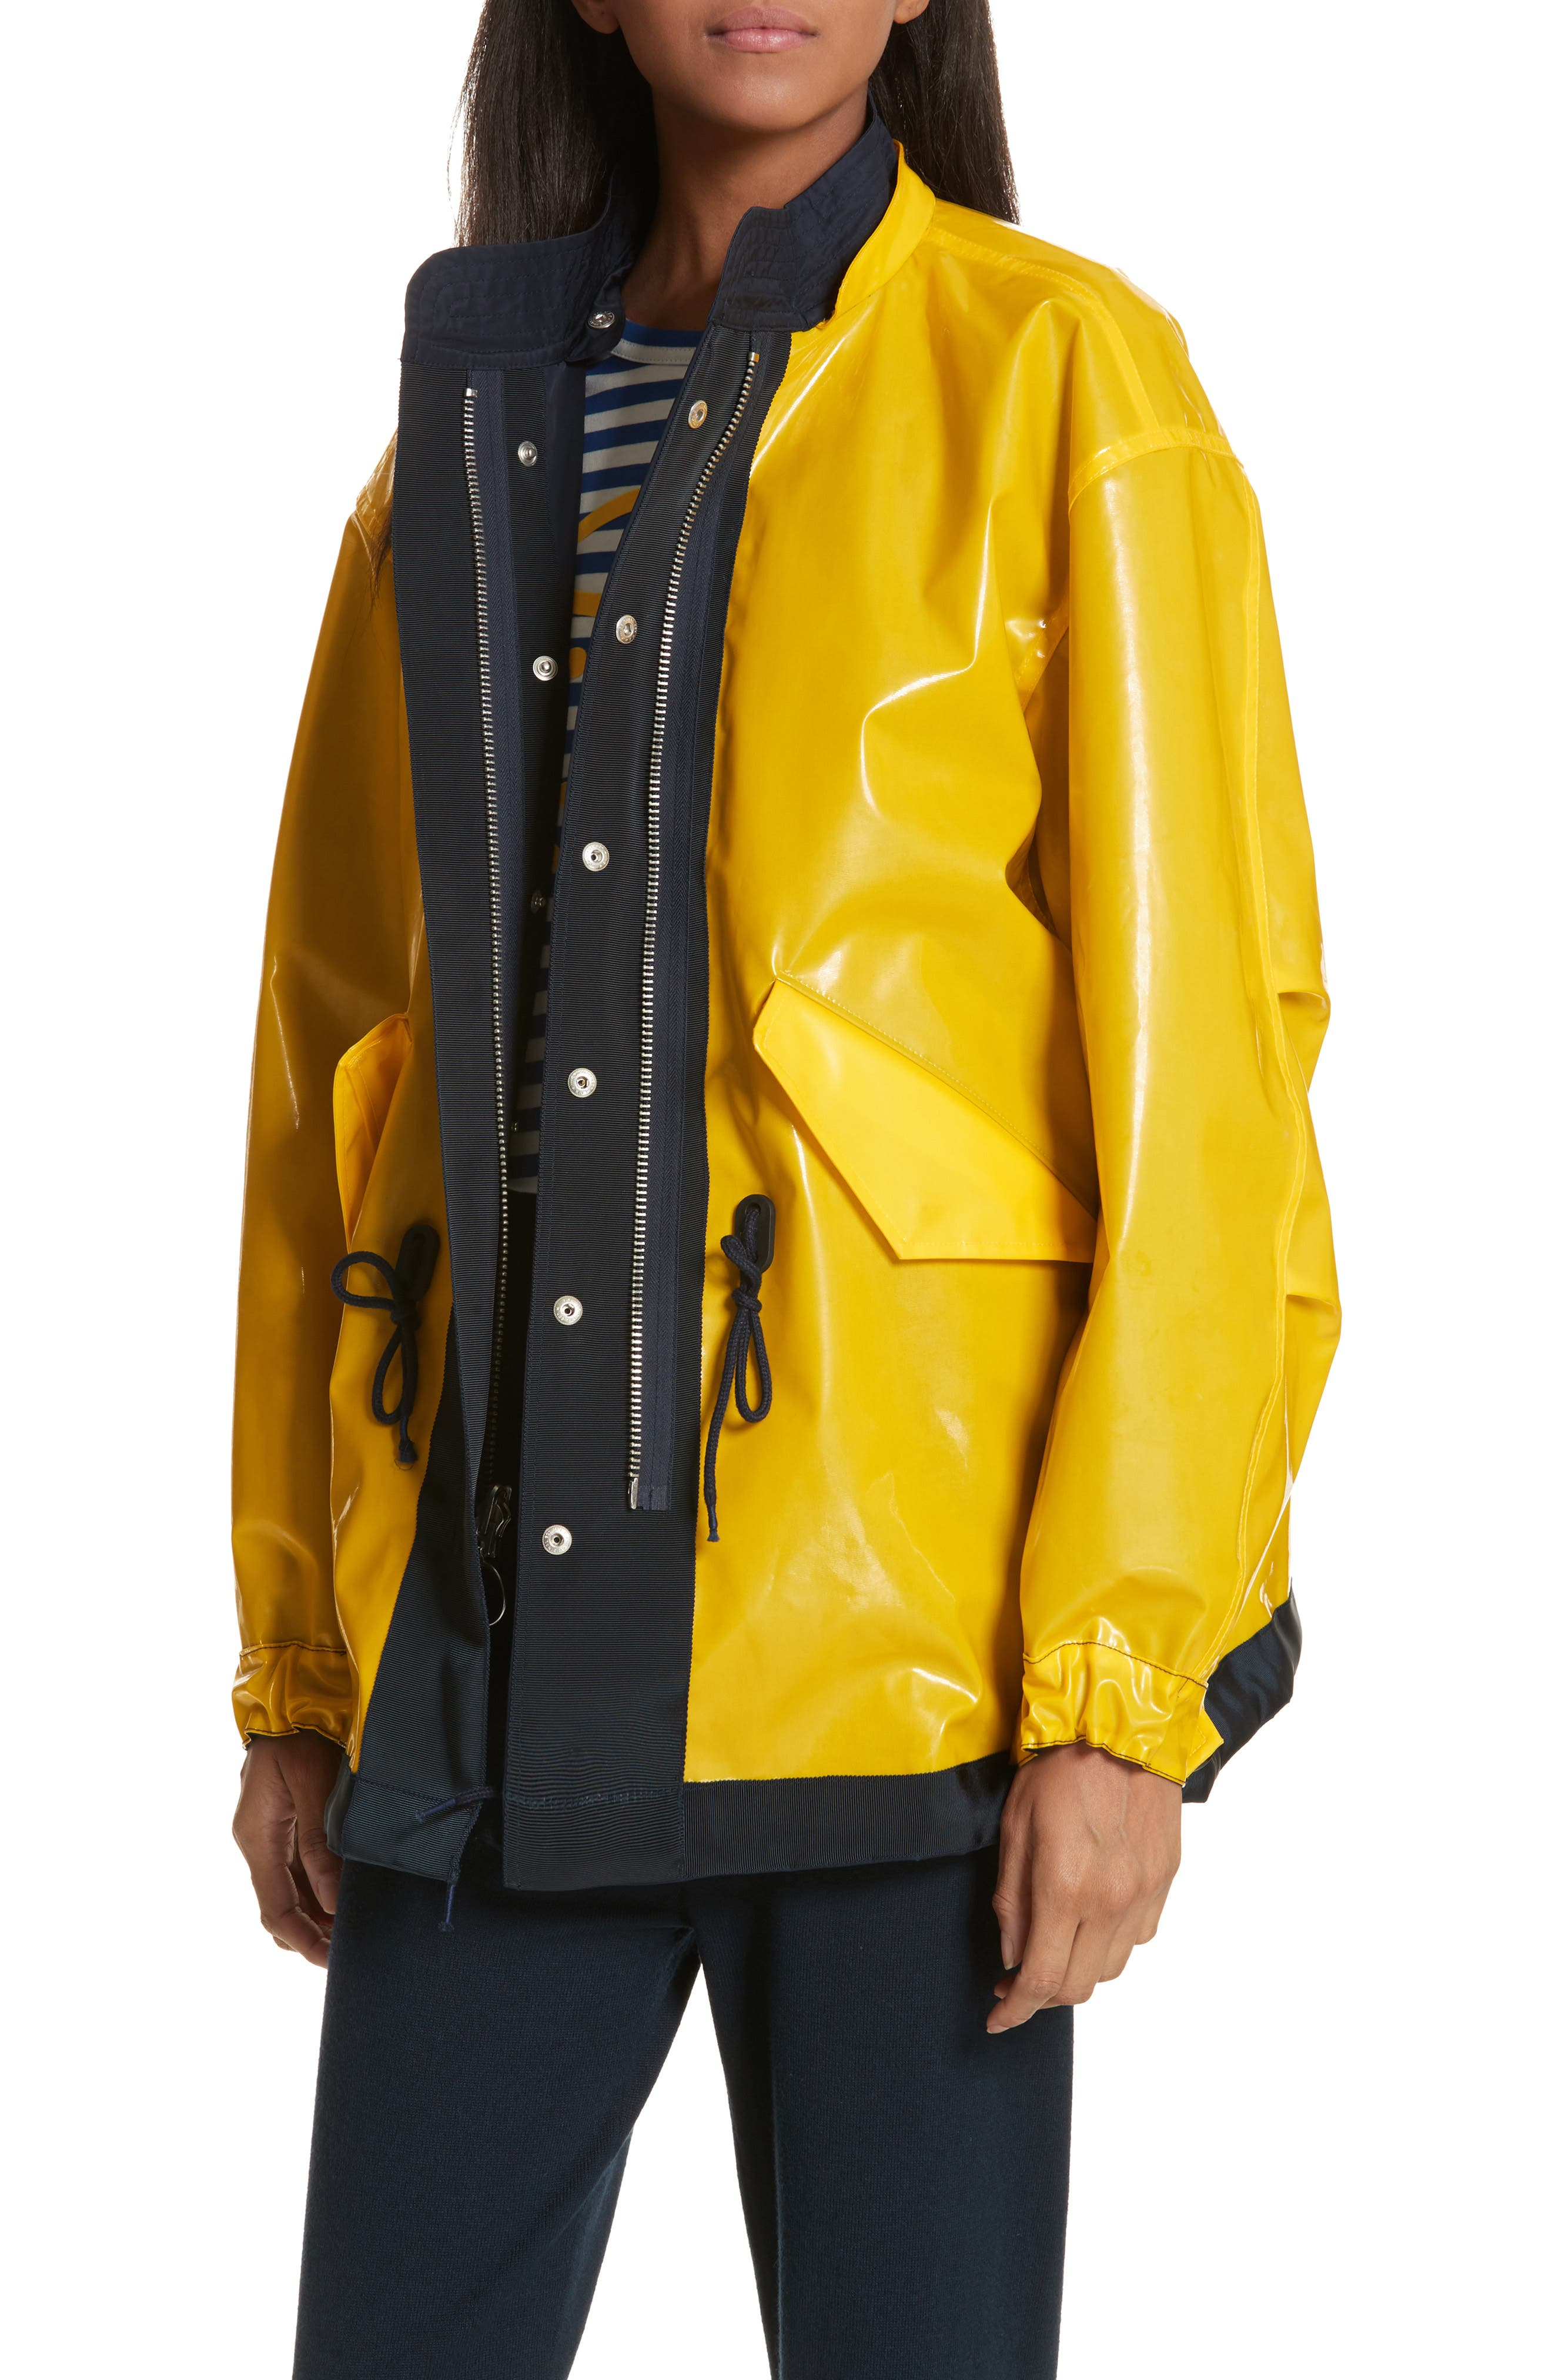 Reversible Rain Jacket,                             Alternate thumbnail 6, color,                             Tory Navy/ Cyber Yellow